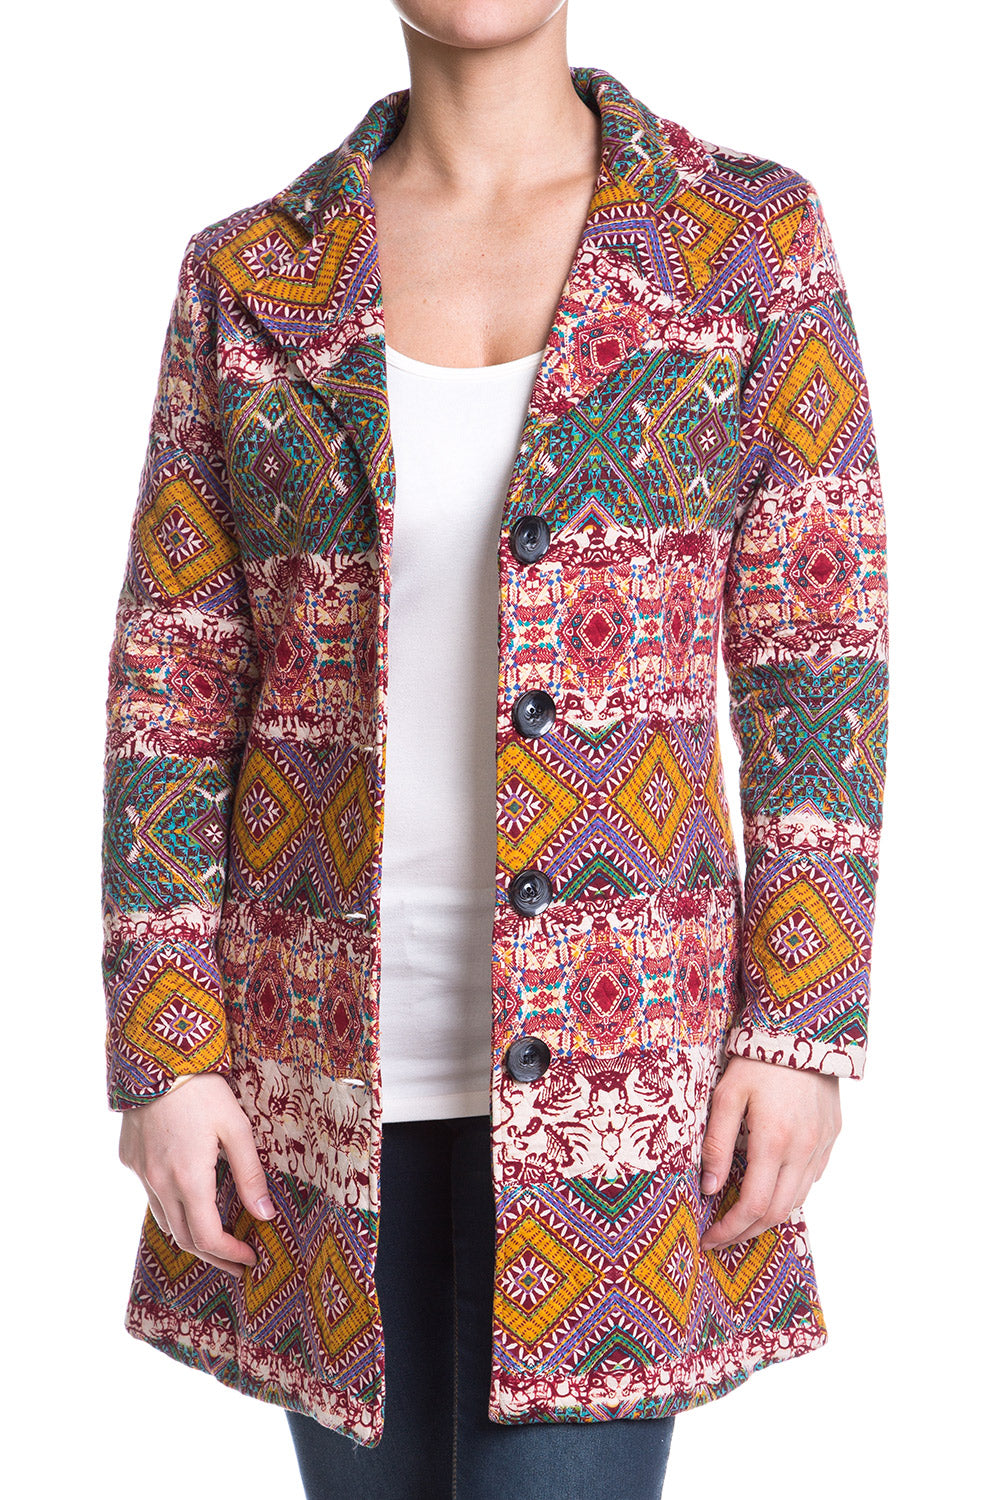 Type 3 Anthropology Coat